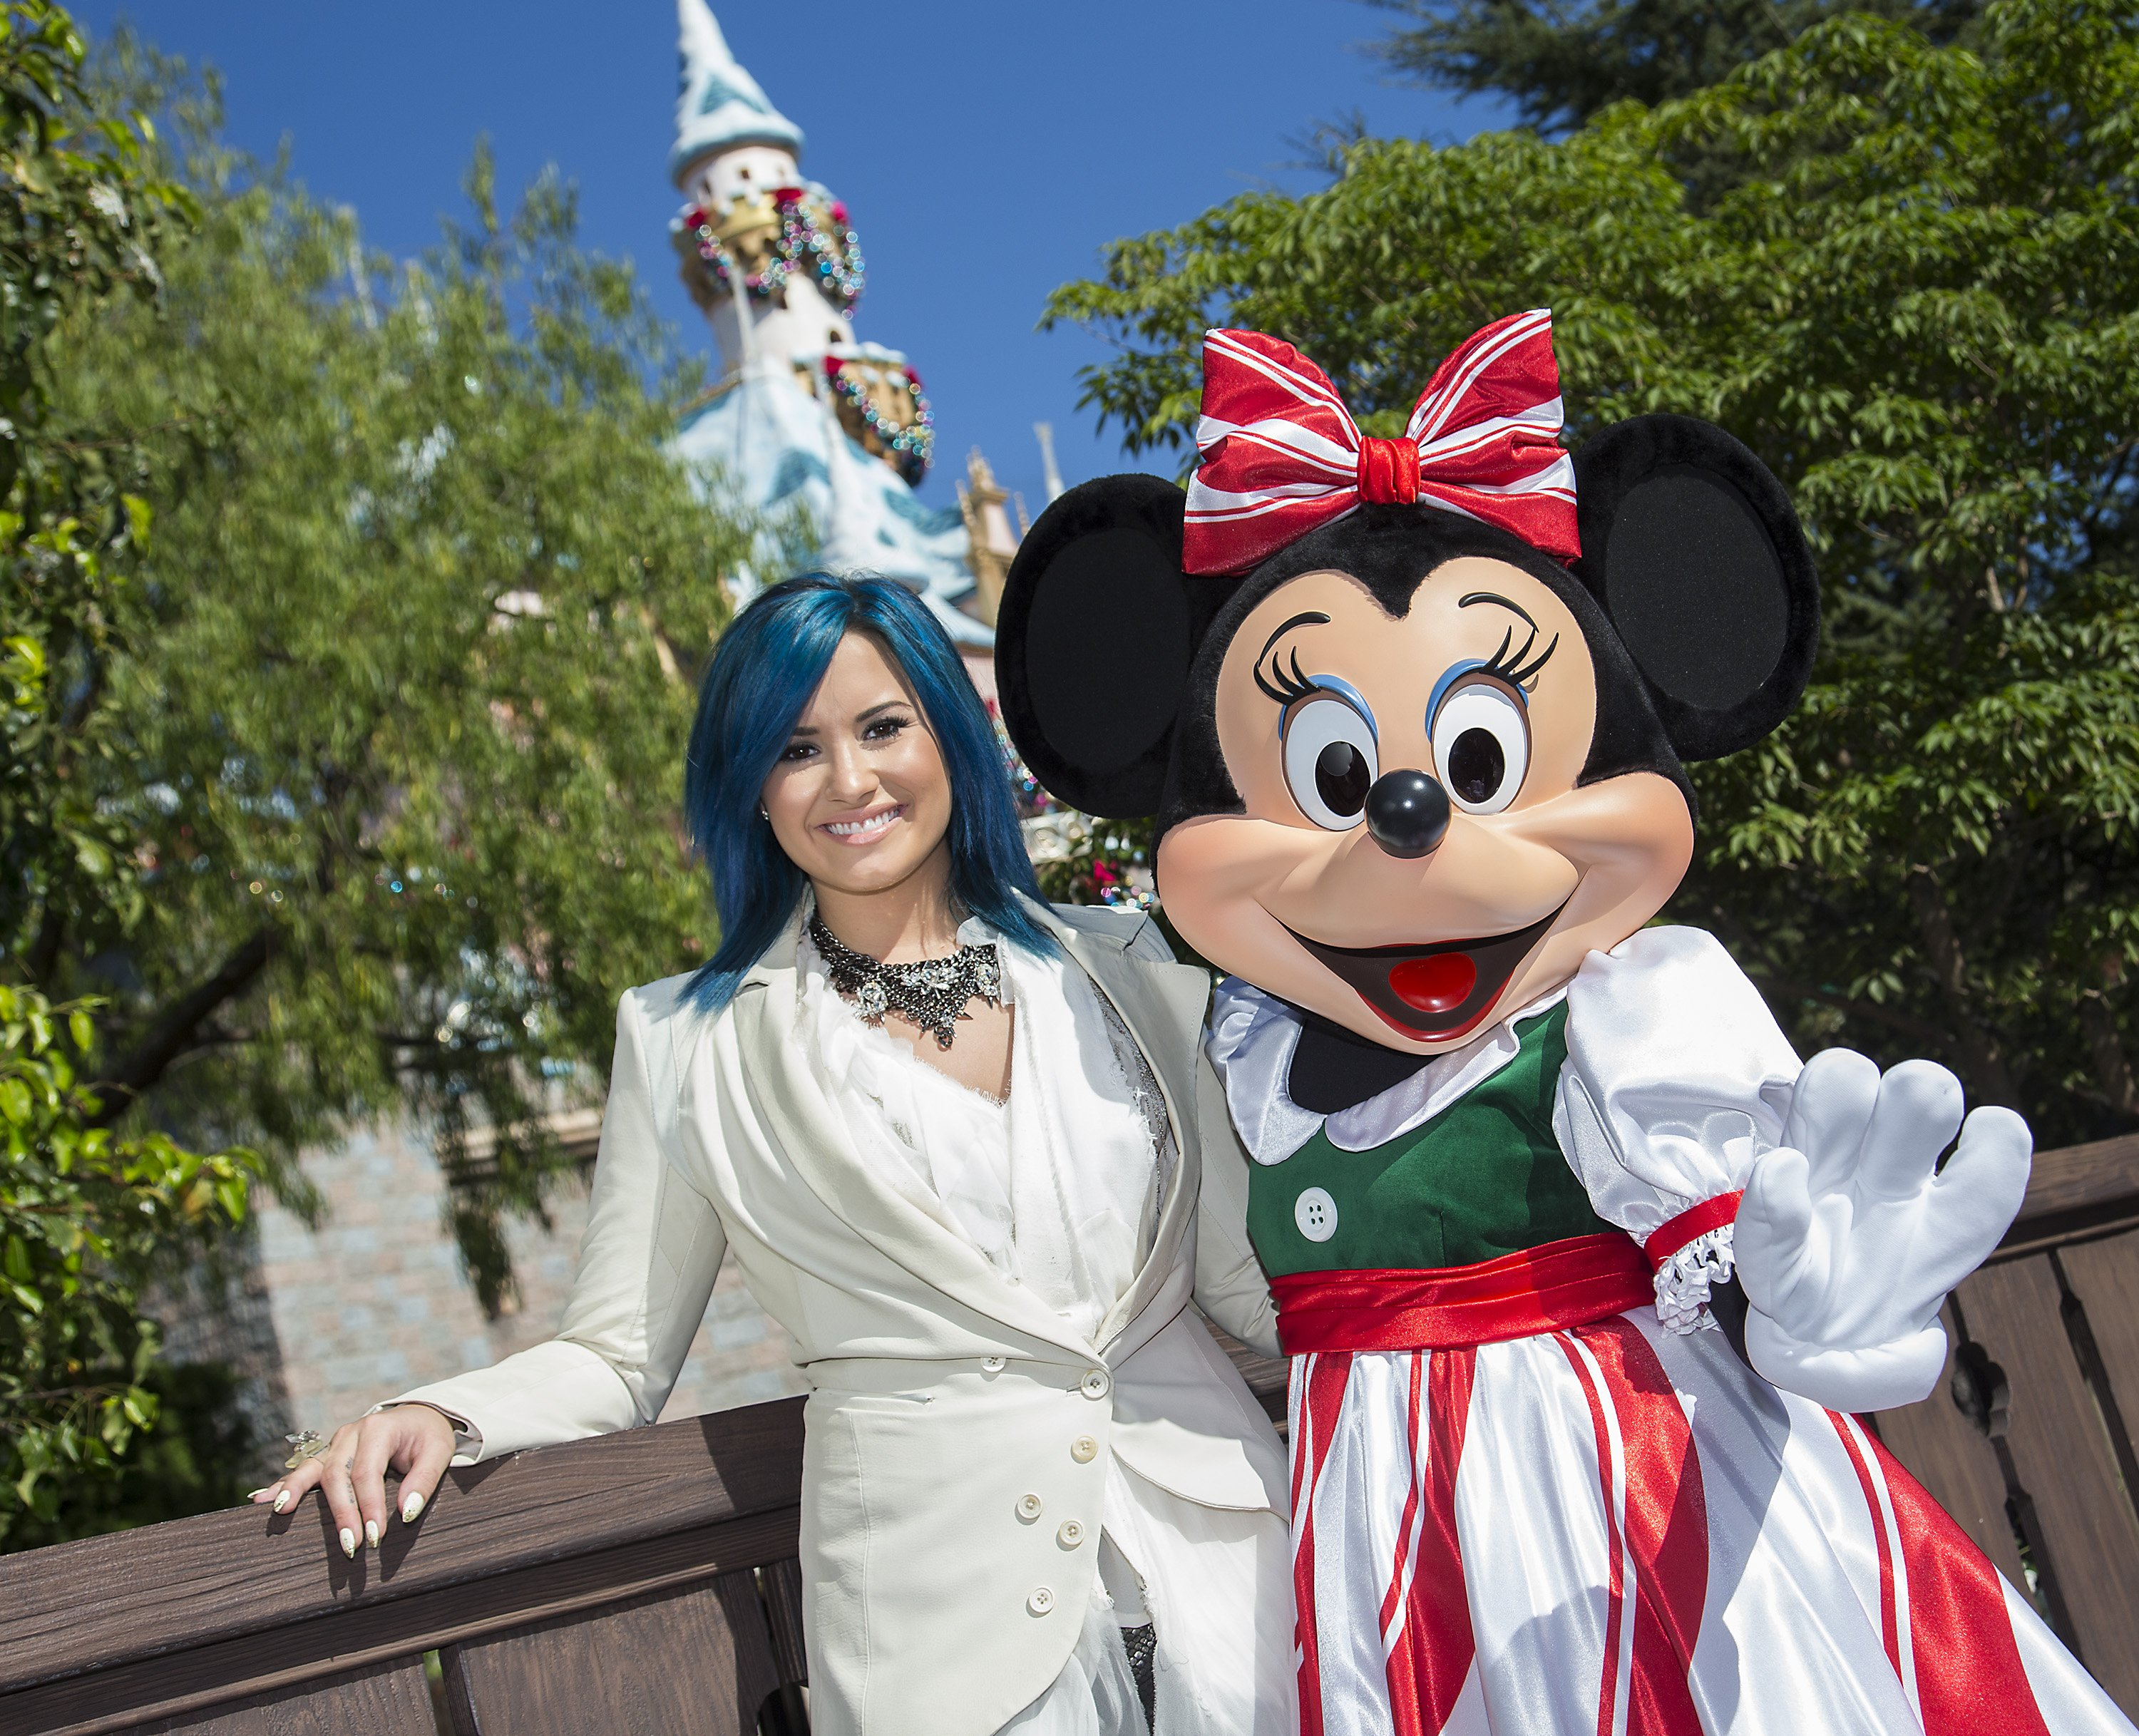 Demi Lovato at Disney